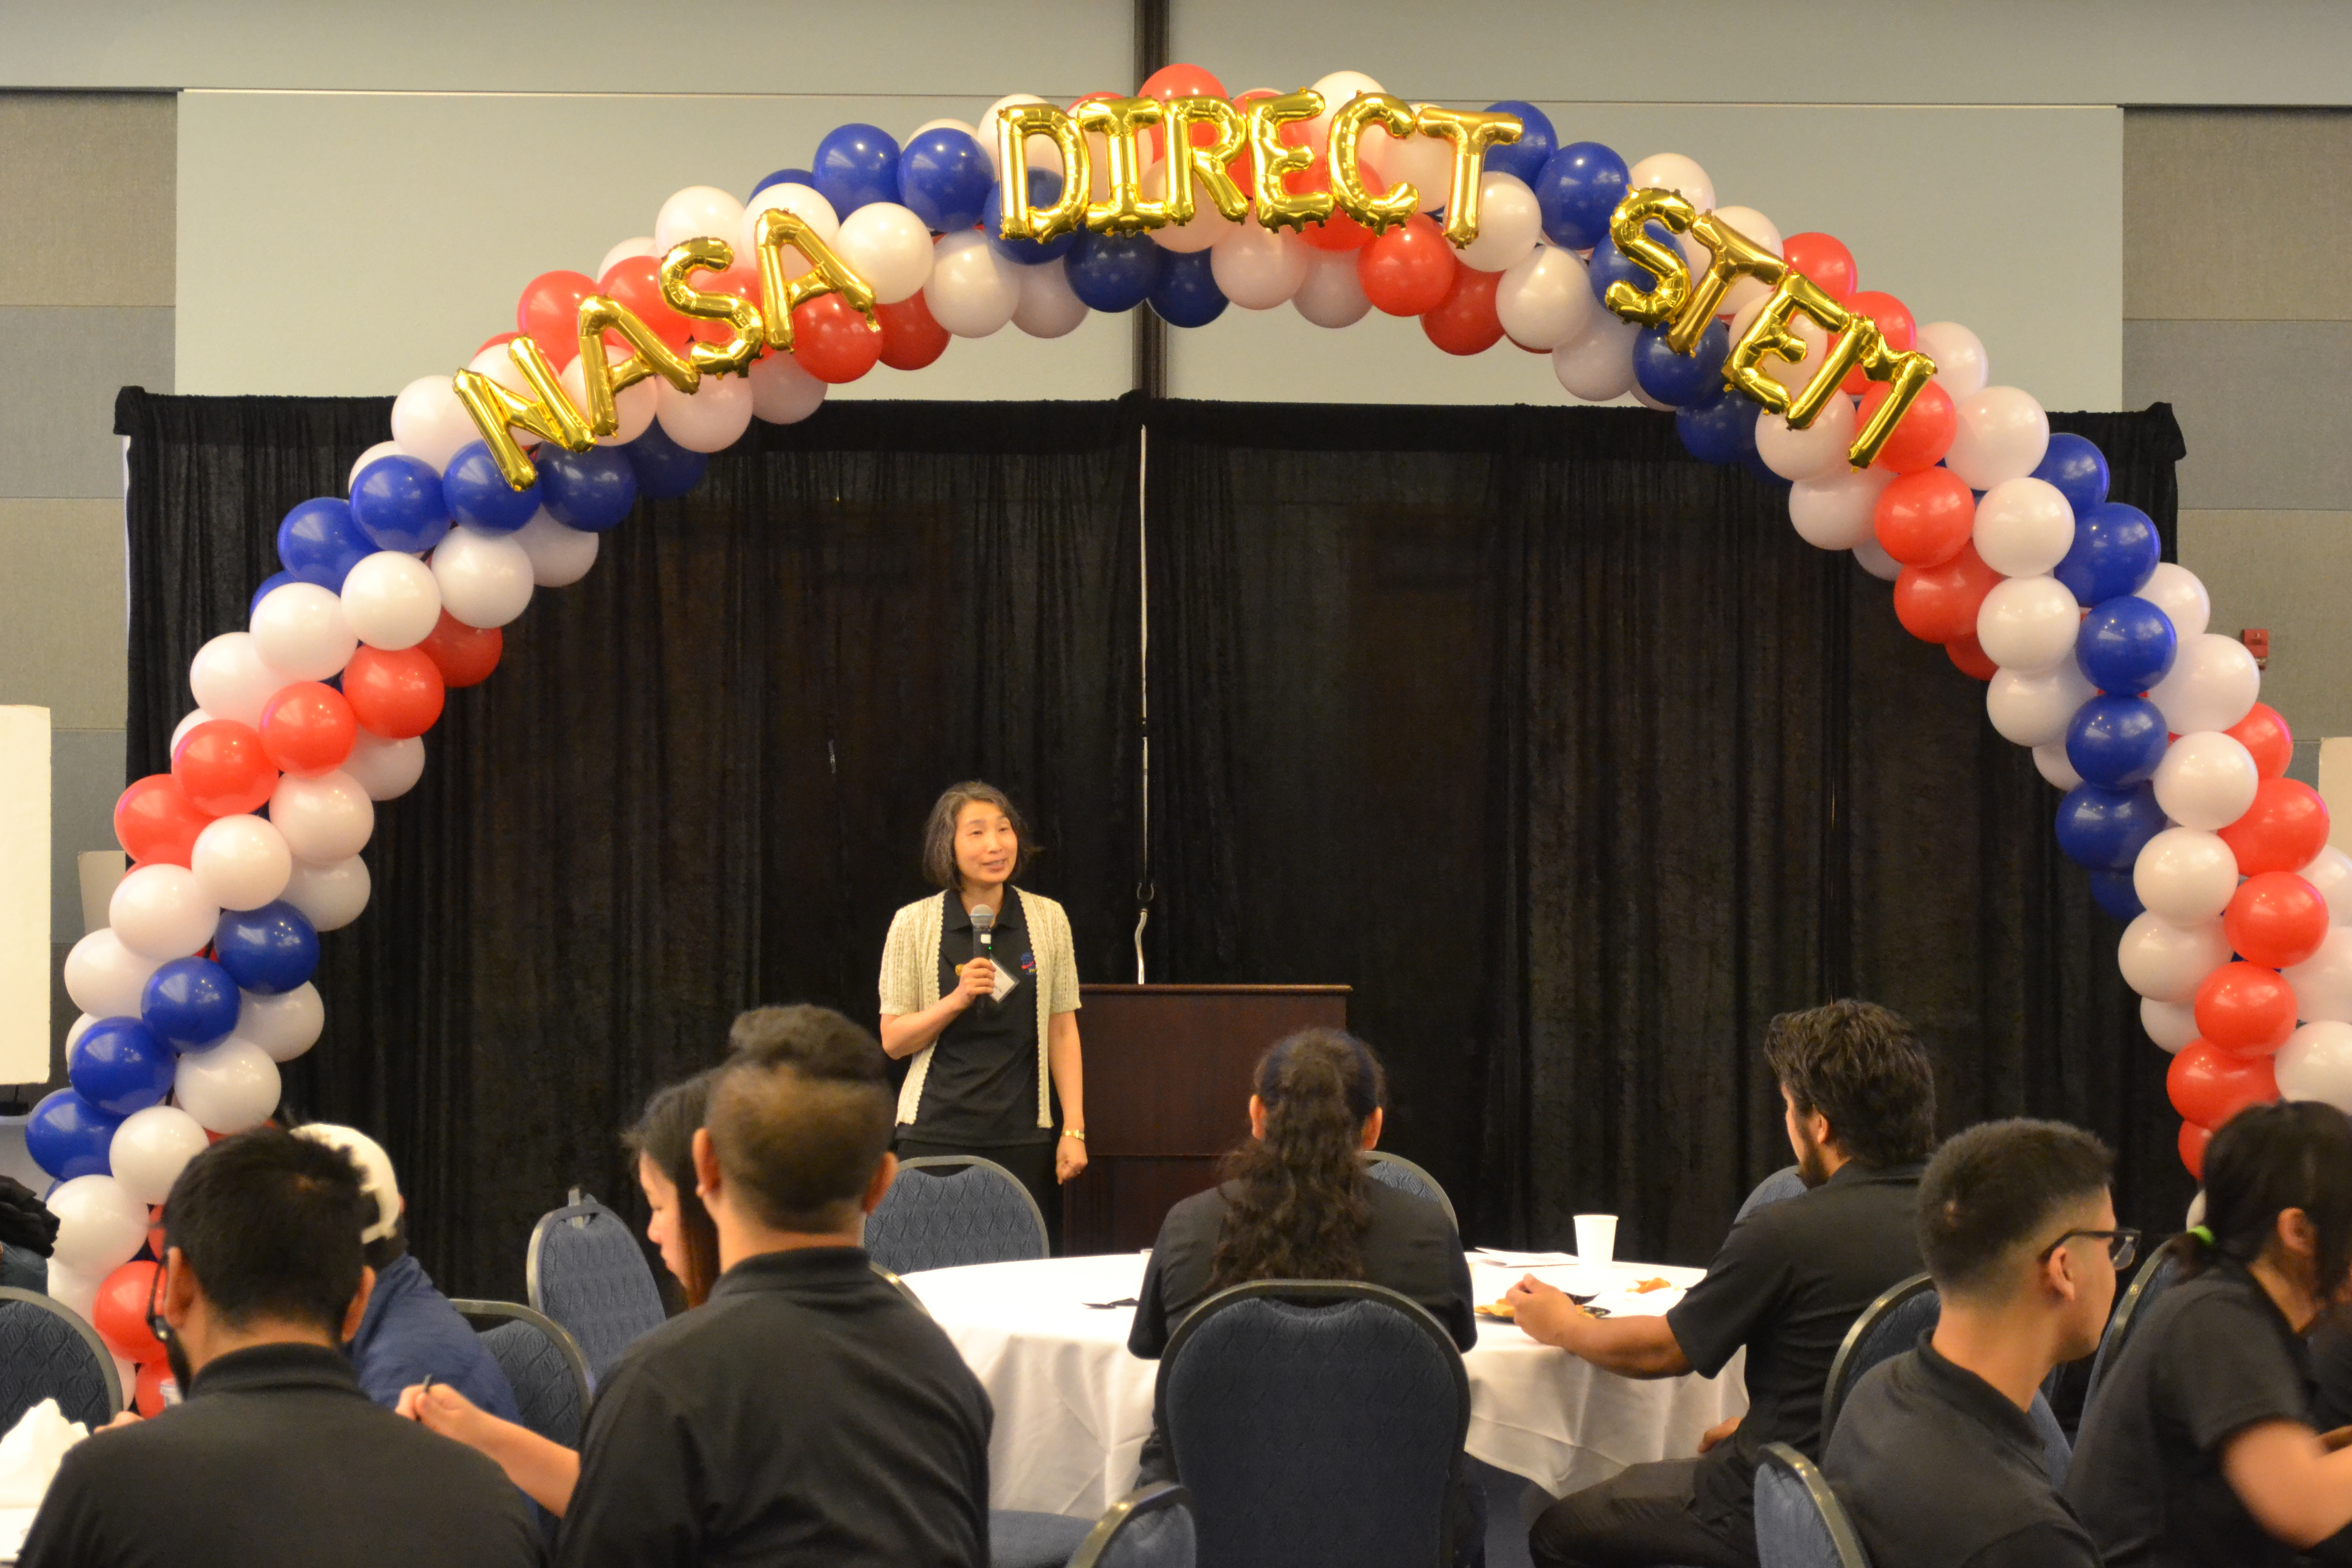 Dr. Hengchun Ye speaking at the 4th Annual NASA DIRECT-STEM Research Symposium